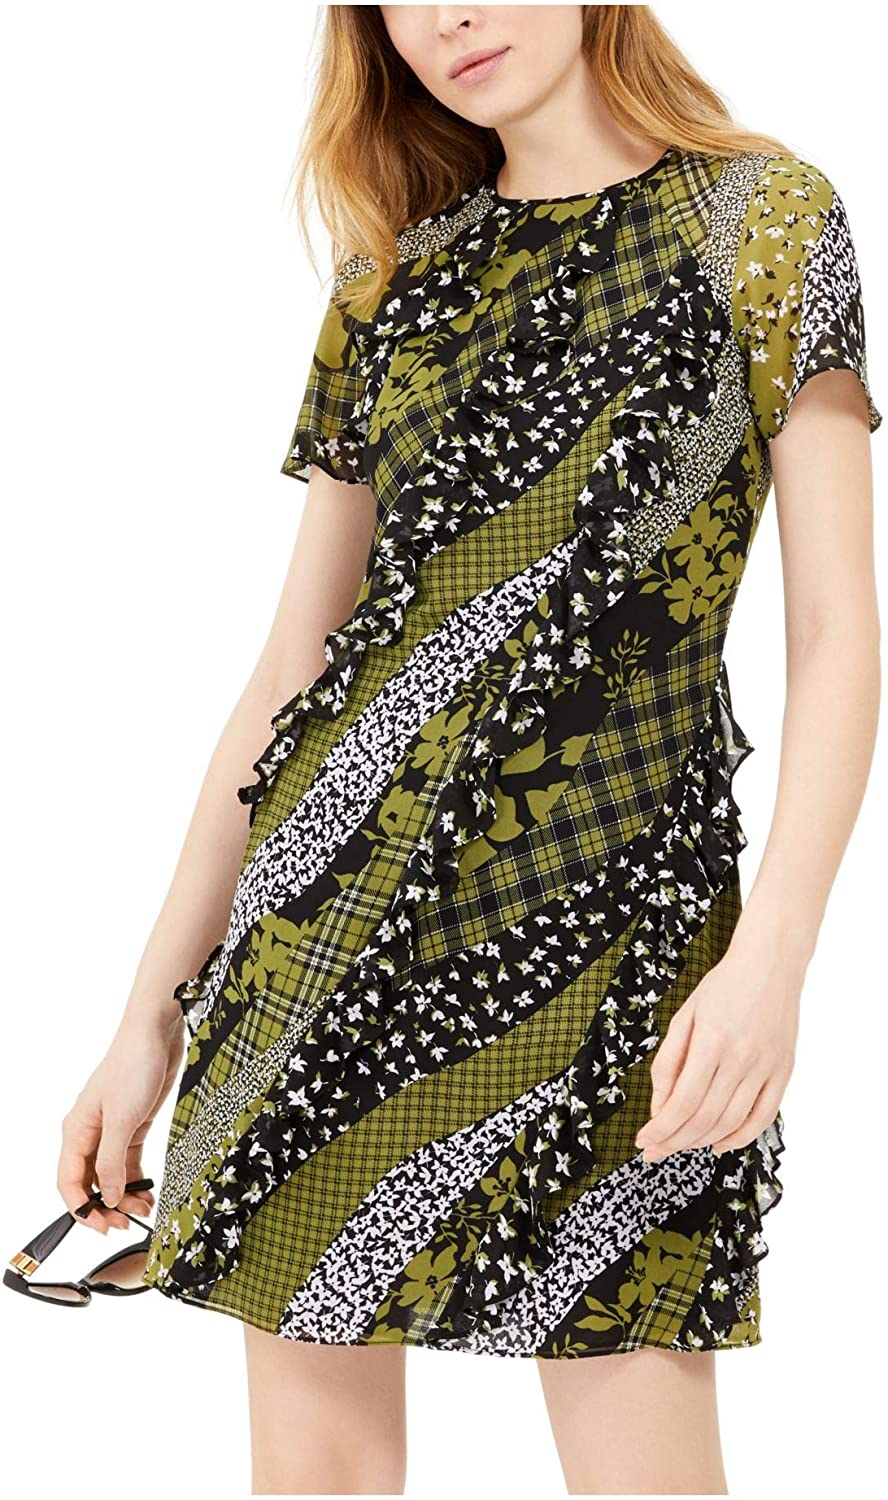 Michael Kors Womens Green Ruffled Printed Short Sleeve Jewel Neck Short Fit + Flare Dress Size 4